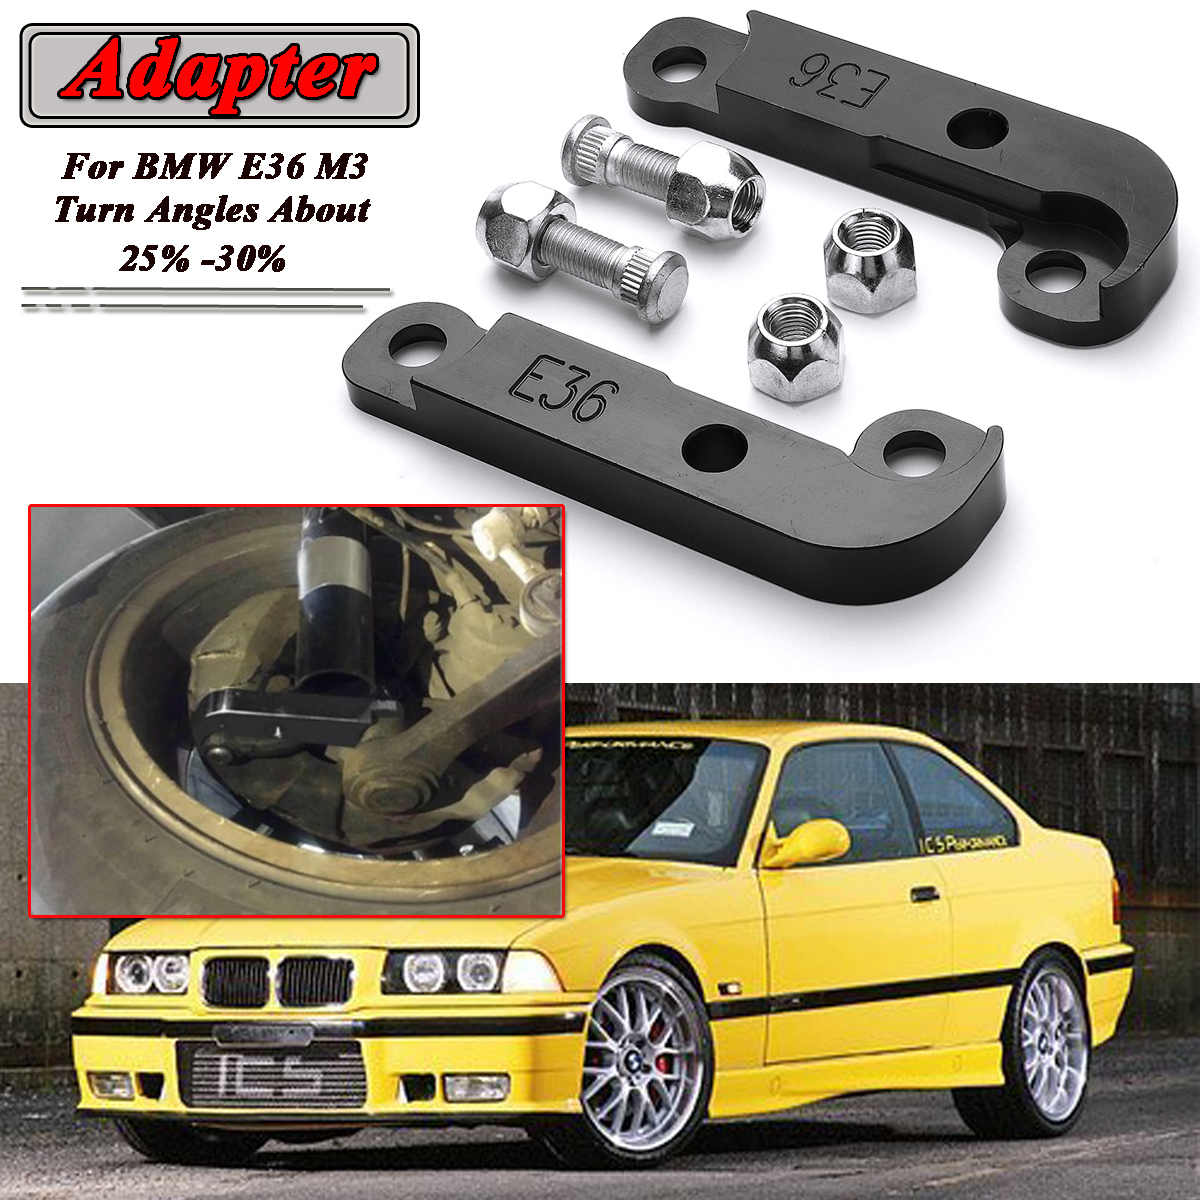 medium resolution of 2pcs red black adapter increasing turn angles about 25 30 drift lock kit for bmw e36 m3 tuning drift power adapters mounting in axle parts from